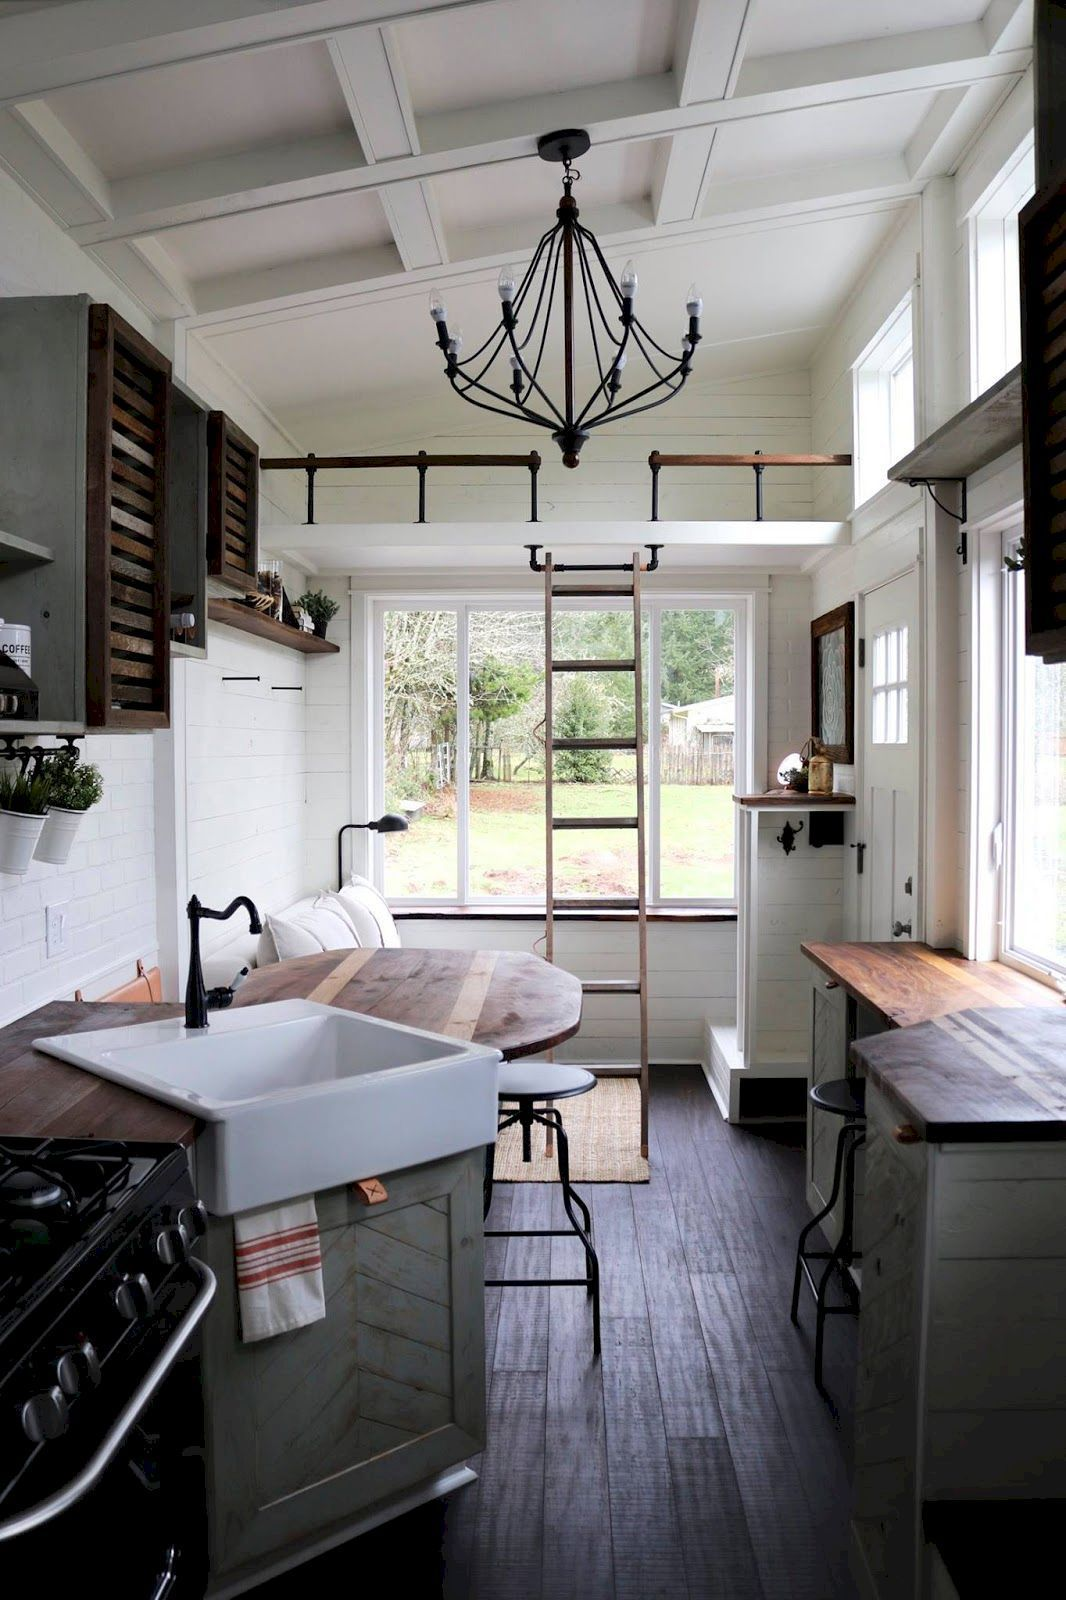 The best tiny house interiors plans we could actually live in ideas also top creative modern decor rh co pinterest